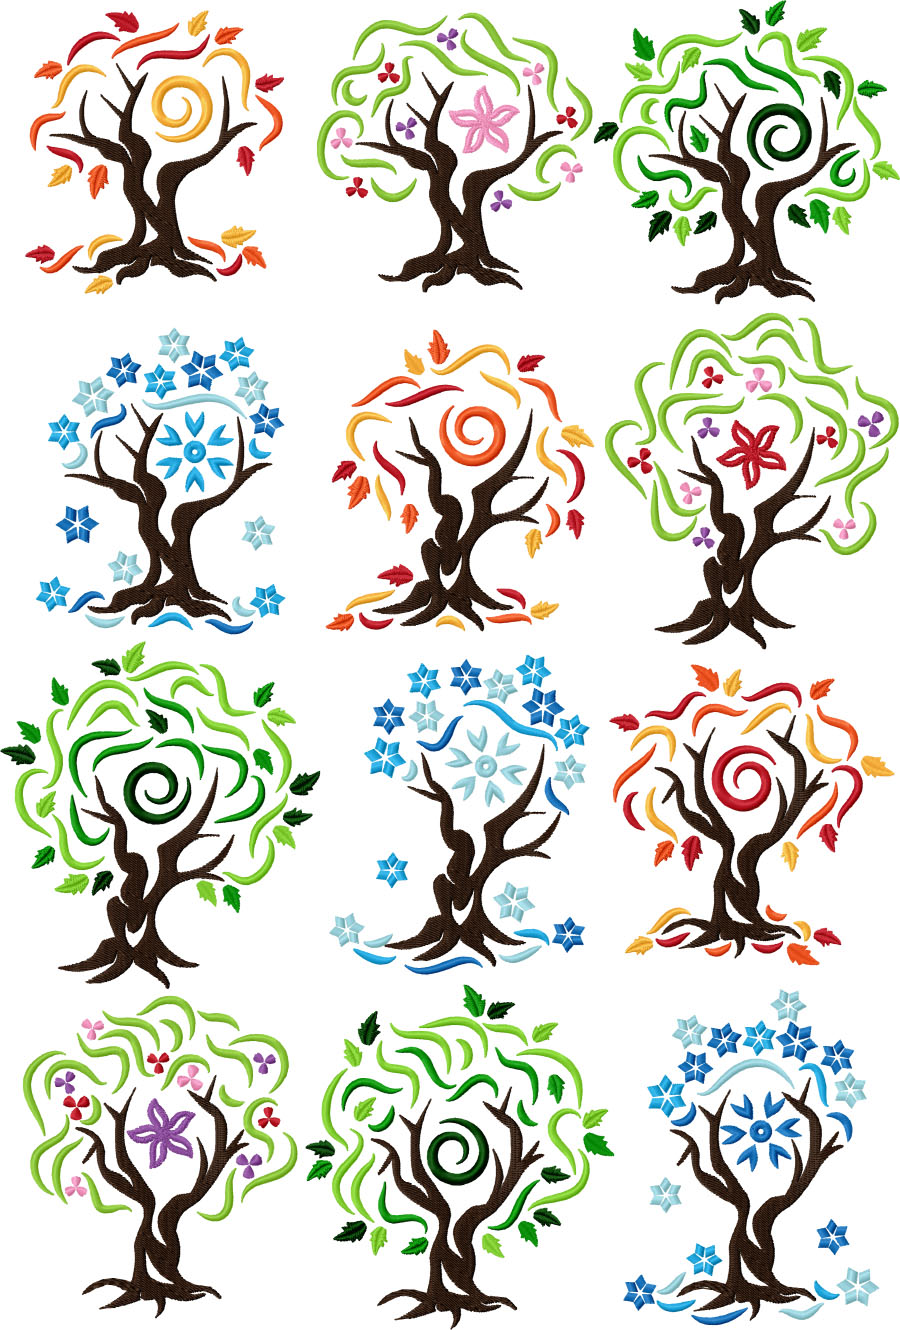 Four Seasons Tree Set of 12 Machine Embroidery Designs